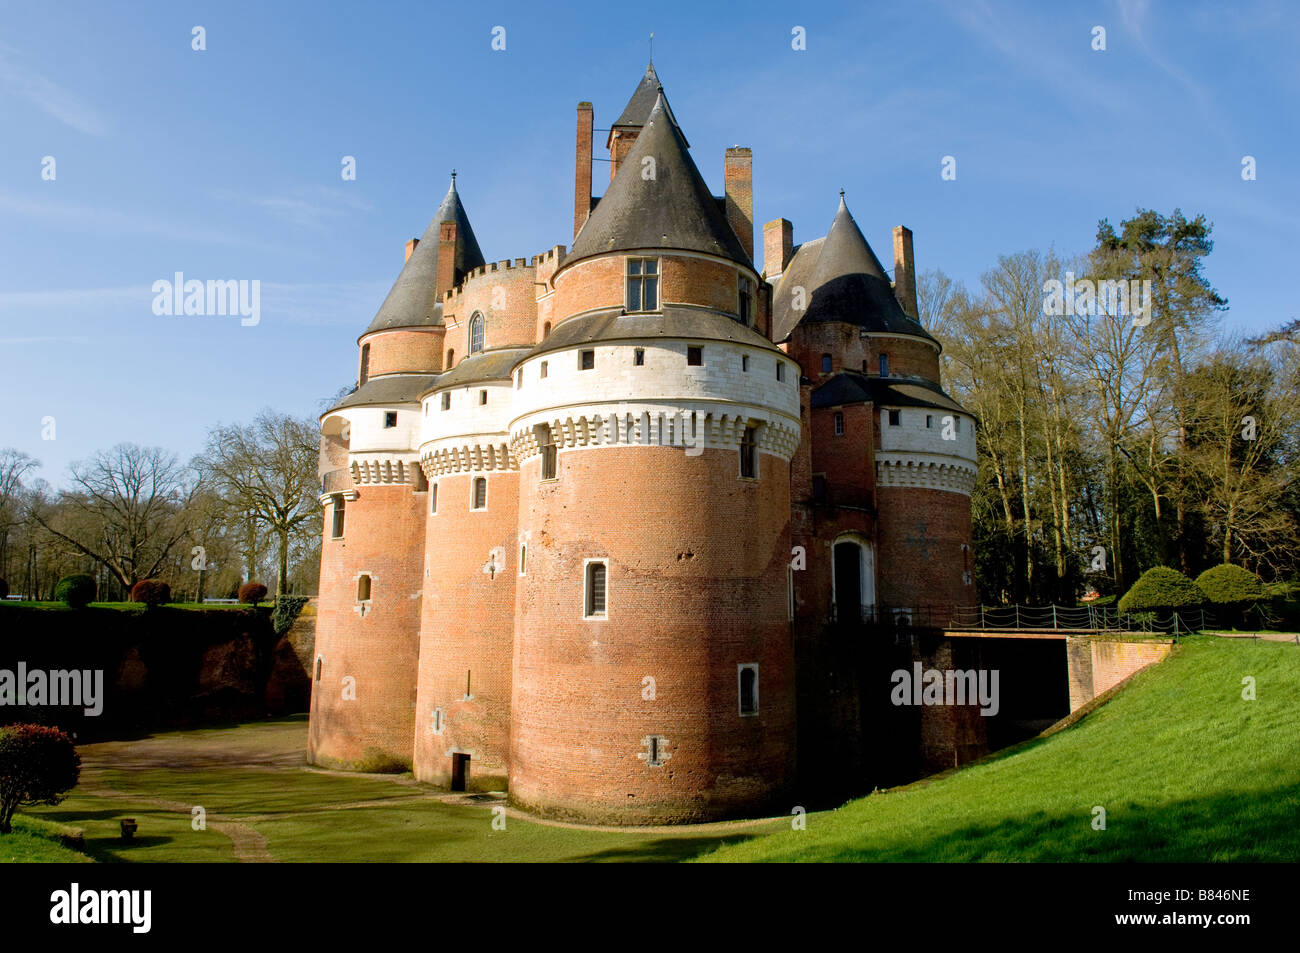 Chateau Fort de Rambures a 15th century feudal fortress in Picardy, France - Stock Image